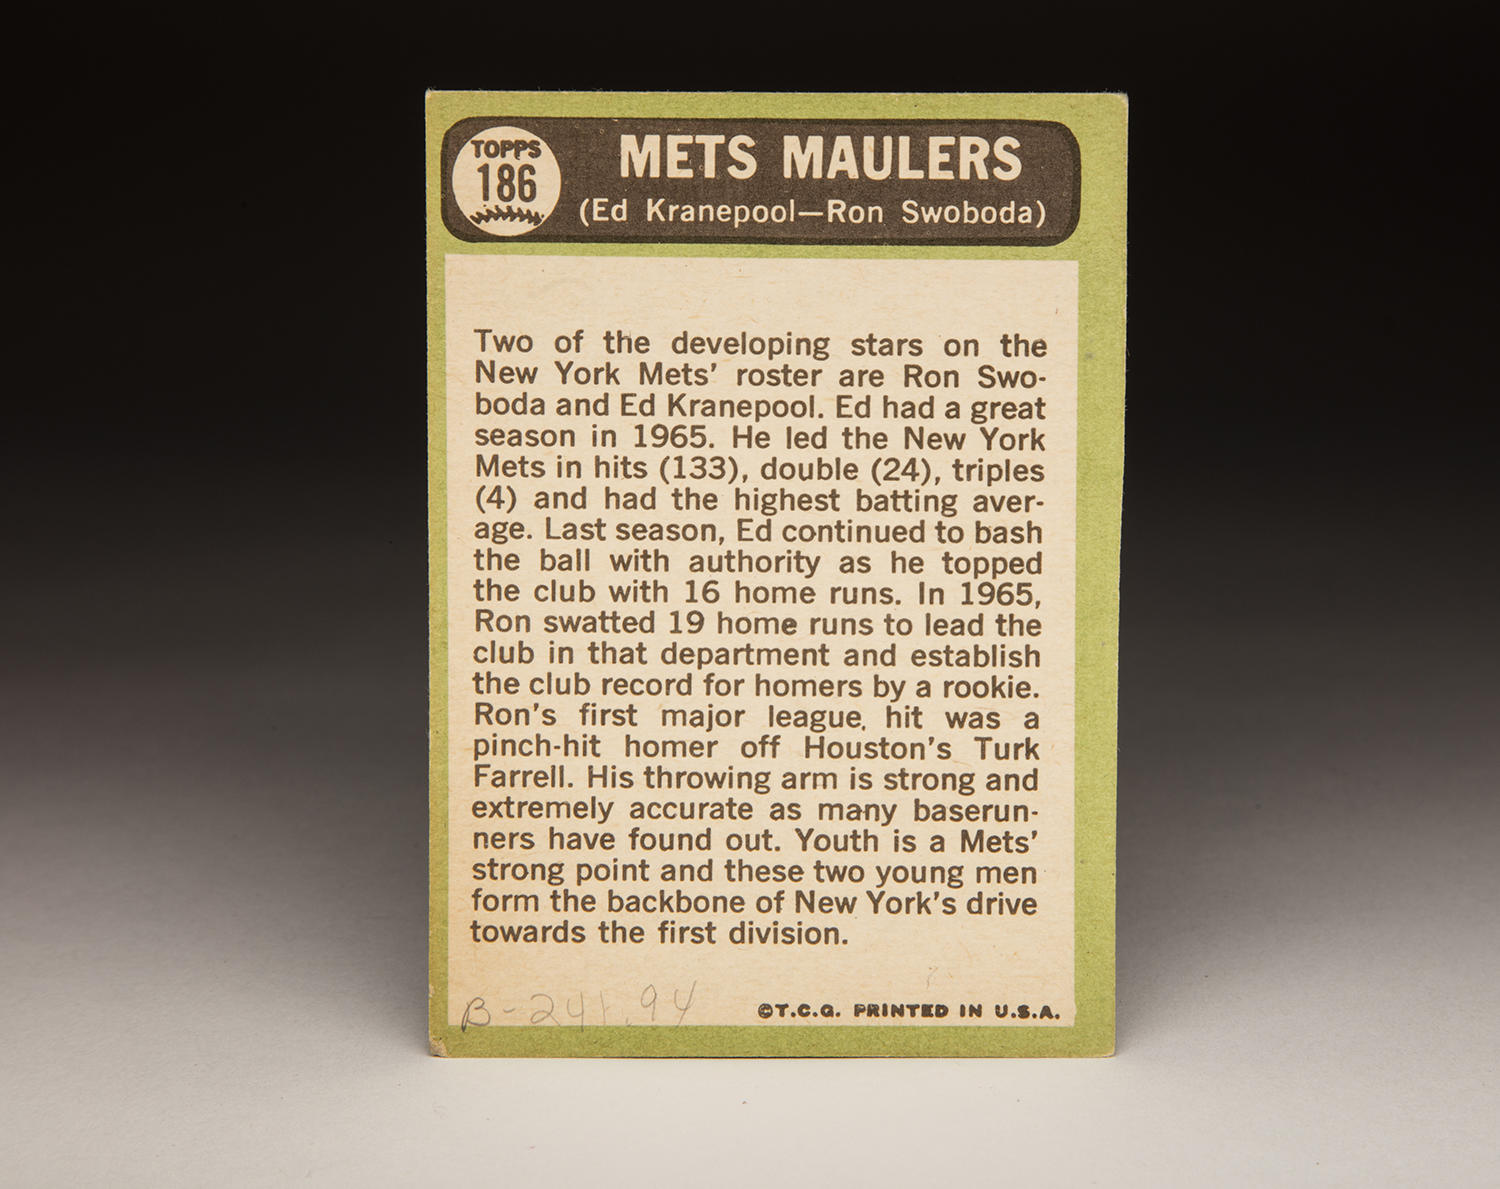 """The reverse side of Topps' 1967 """"Mets Maulers"""" combination card. (Milo Stewart Jr. / National Baseball Hall of Fame)"""